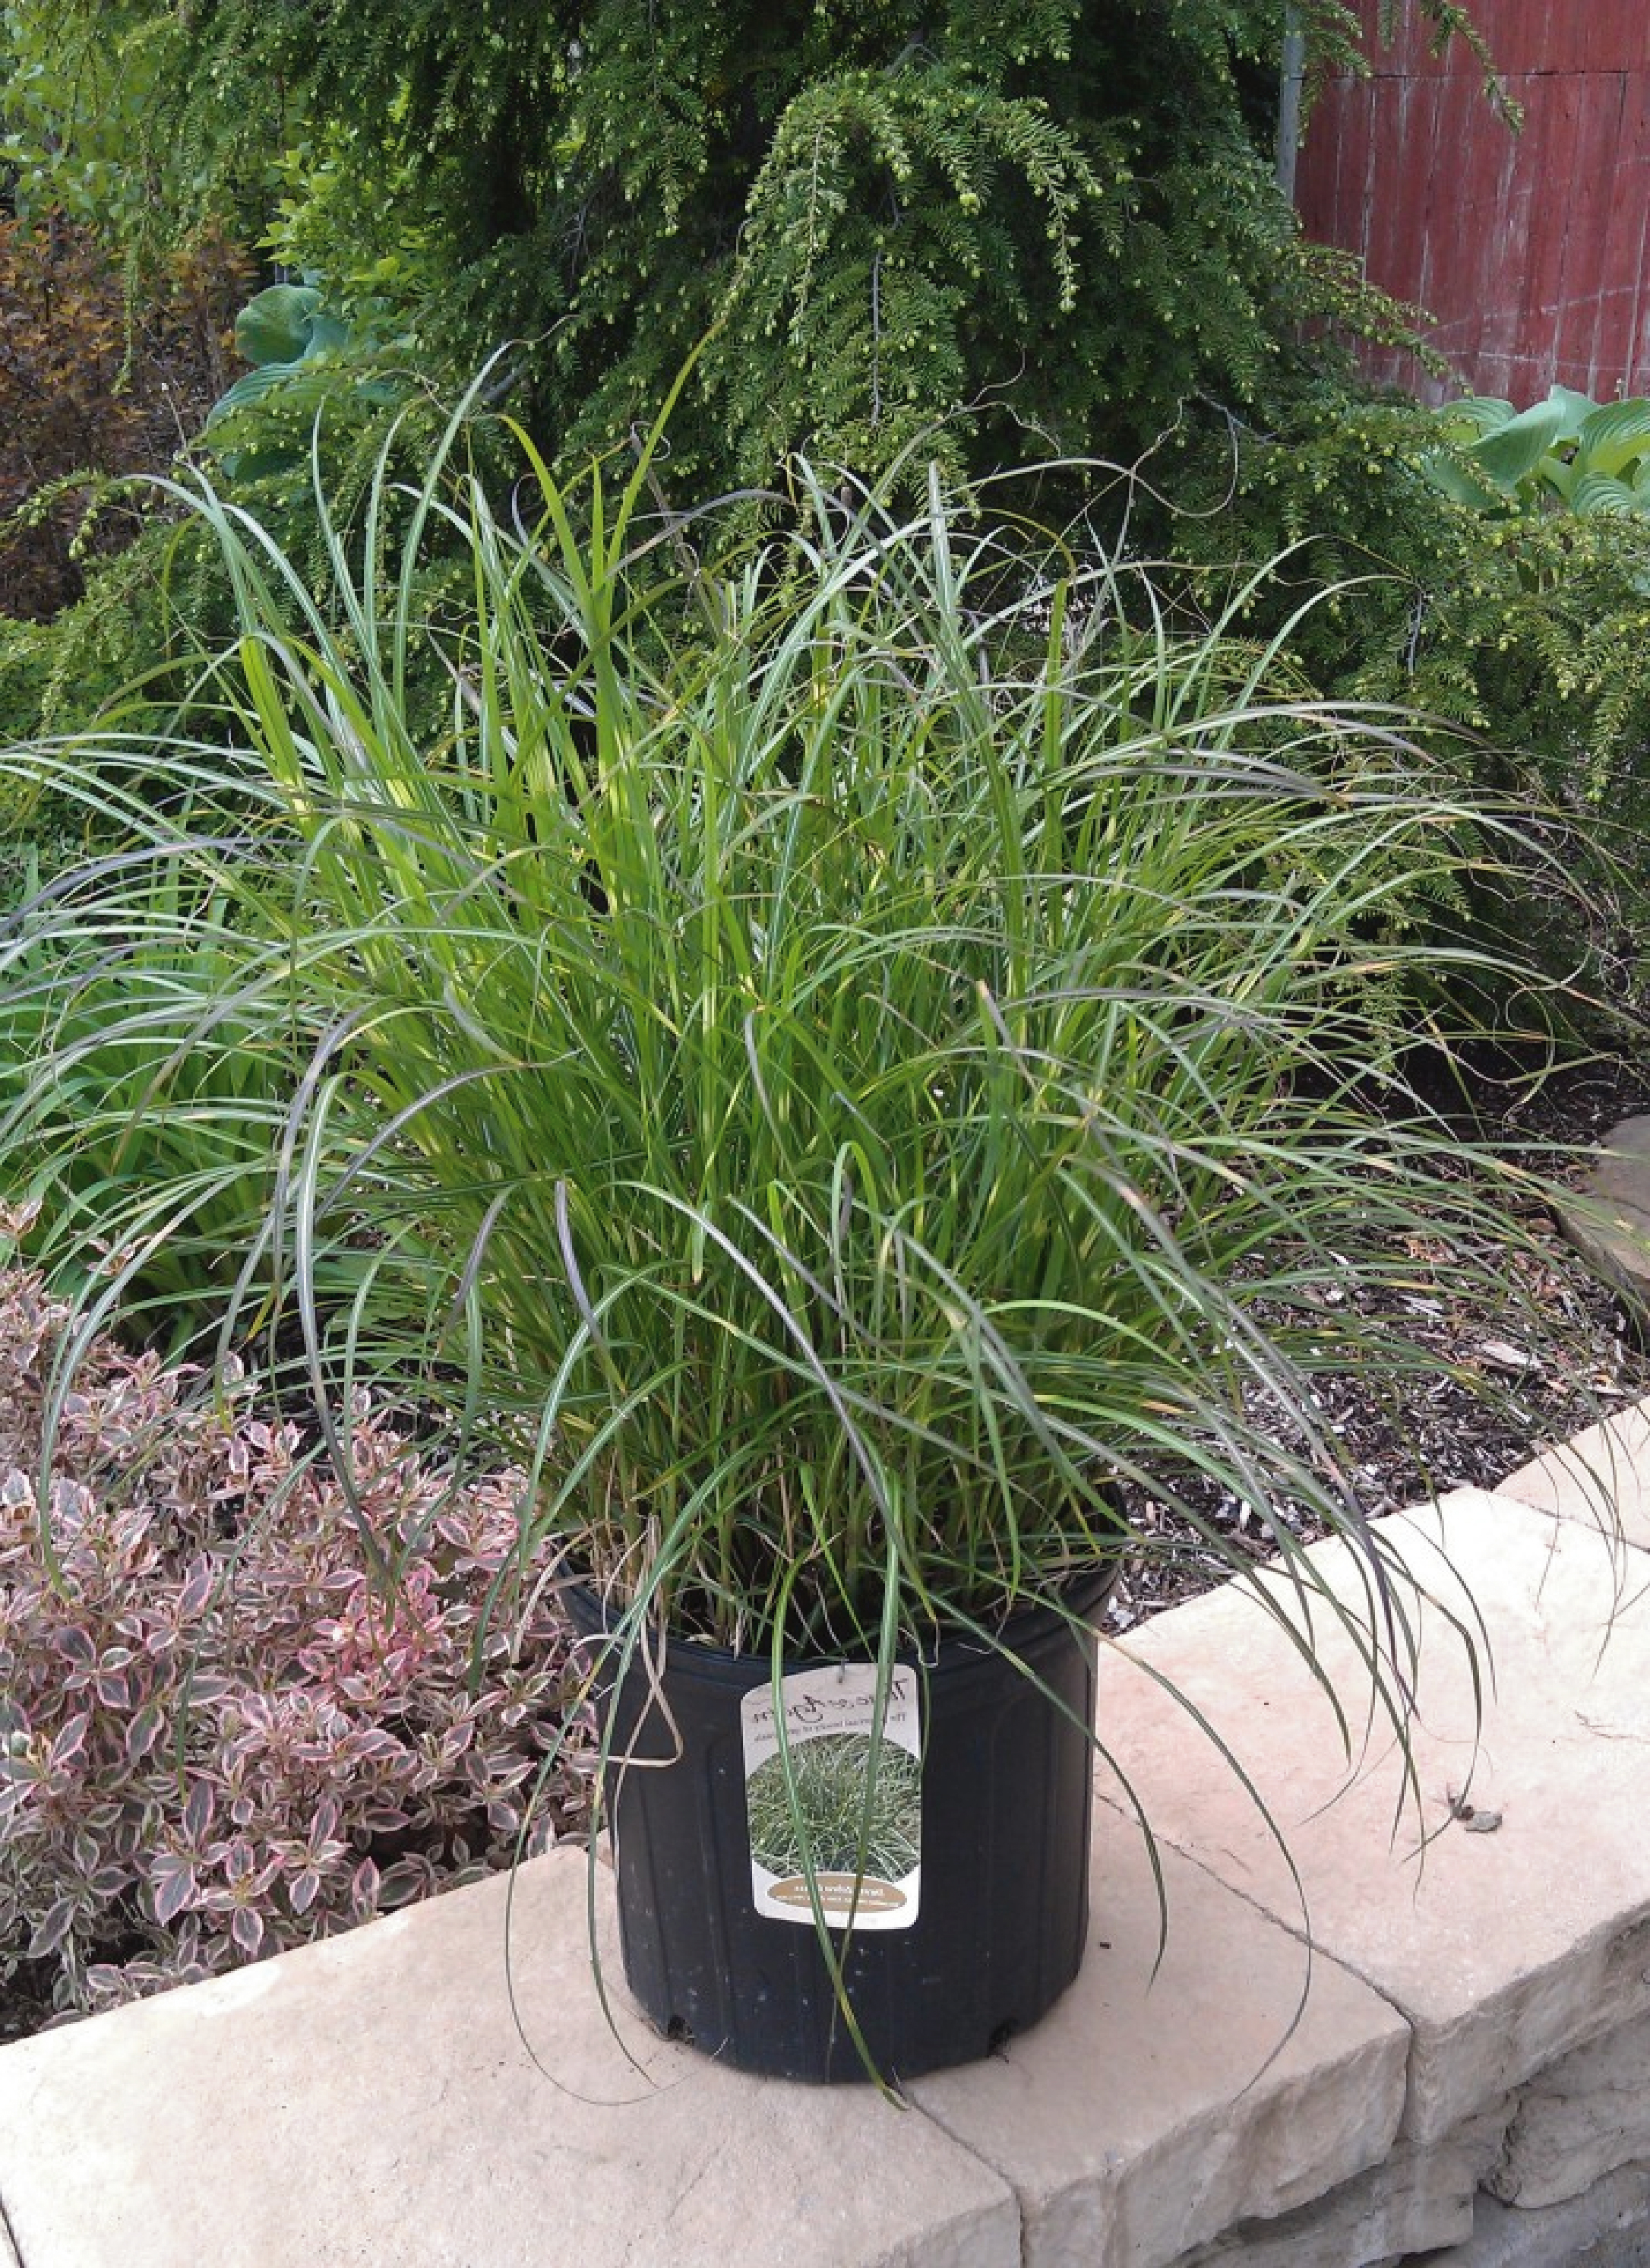 Ornamental grasses zone 5 - Excellent Compact Form Similar To Strictus Yellow Banded Green Foliage With Reddish Plumes Appearing July Sept 5 Available In Summer Zone 5